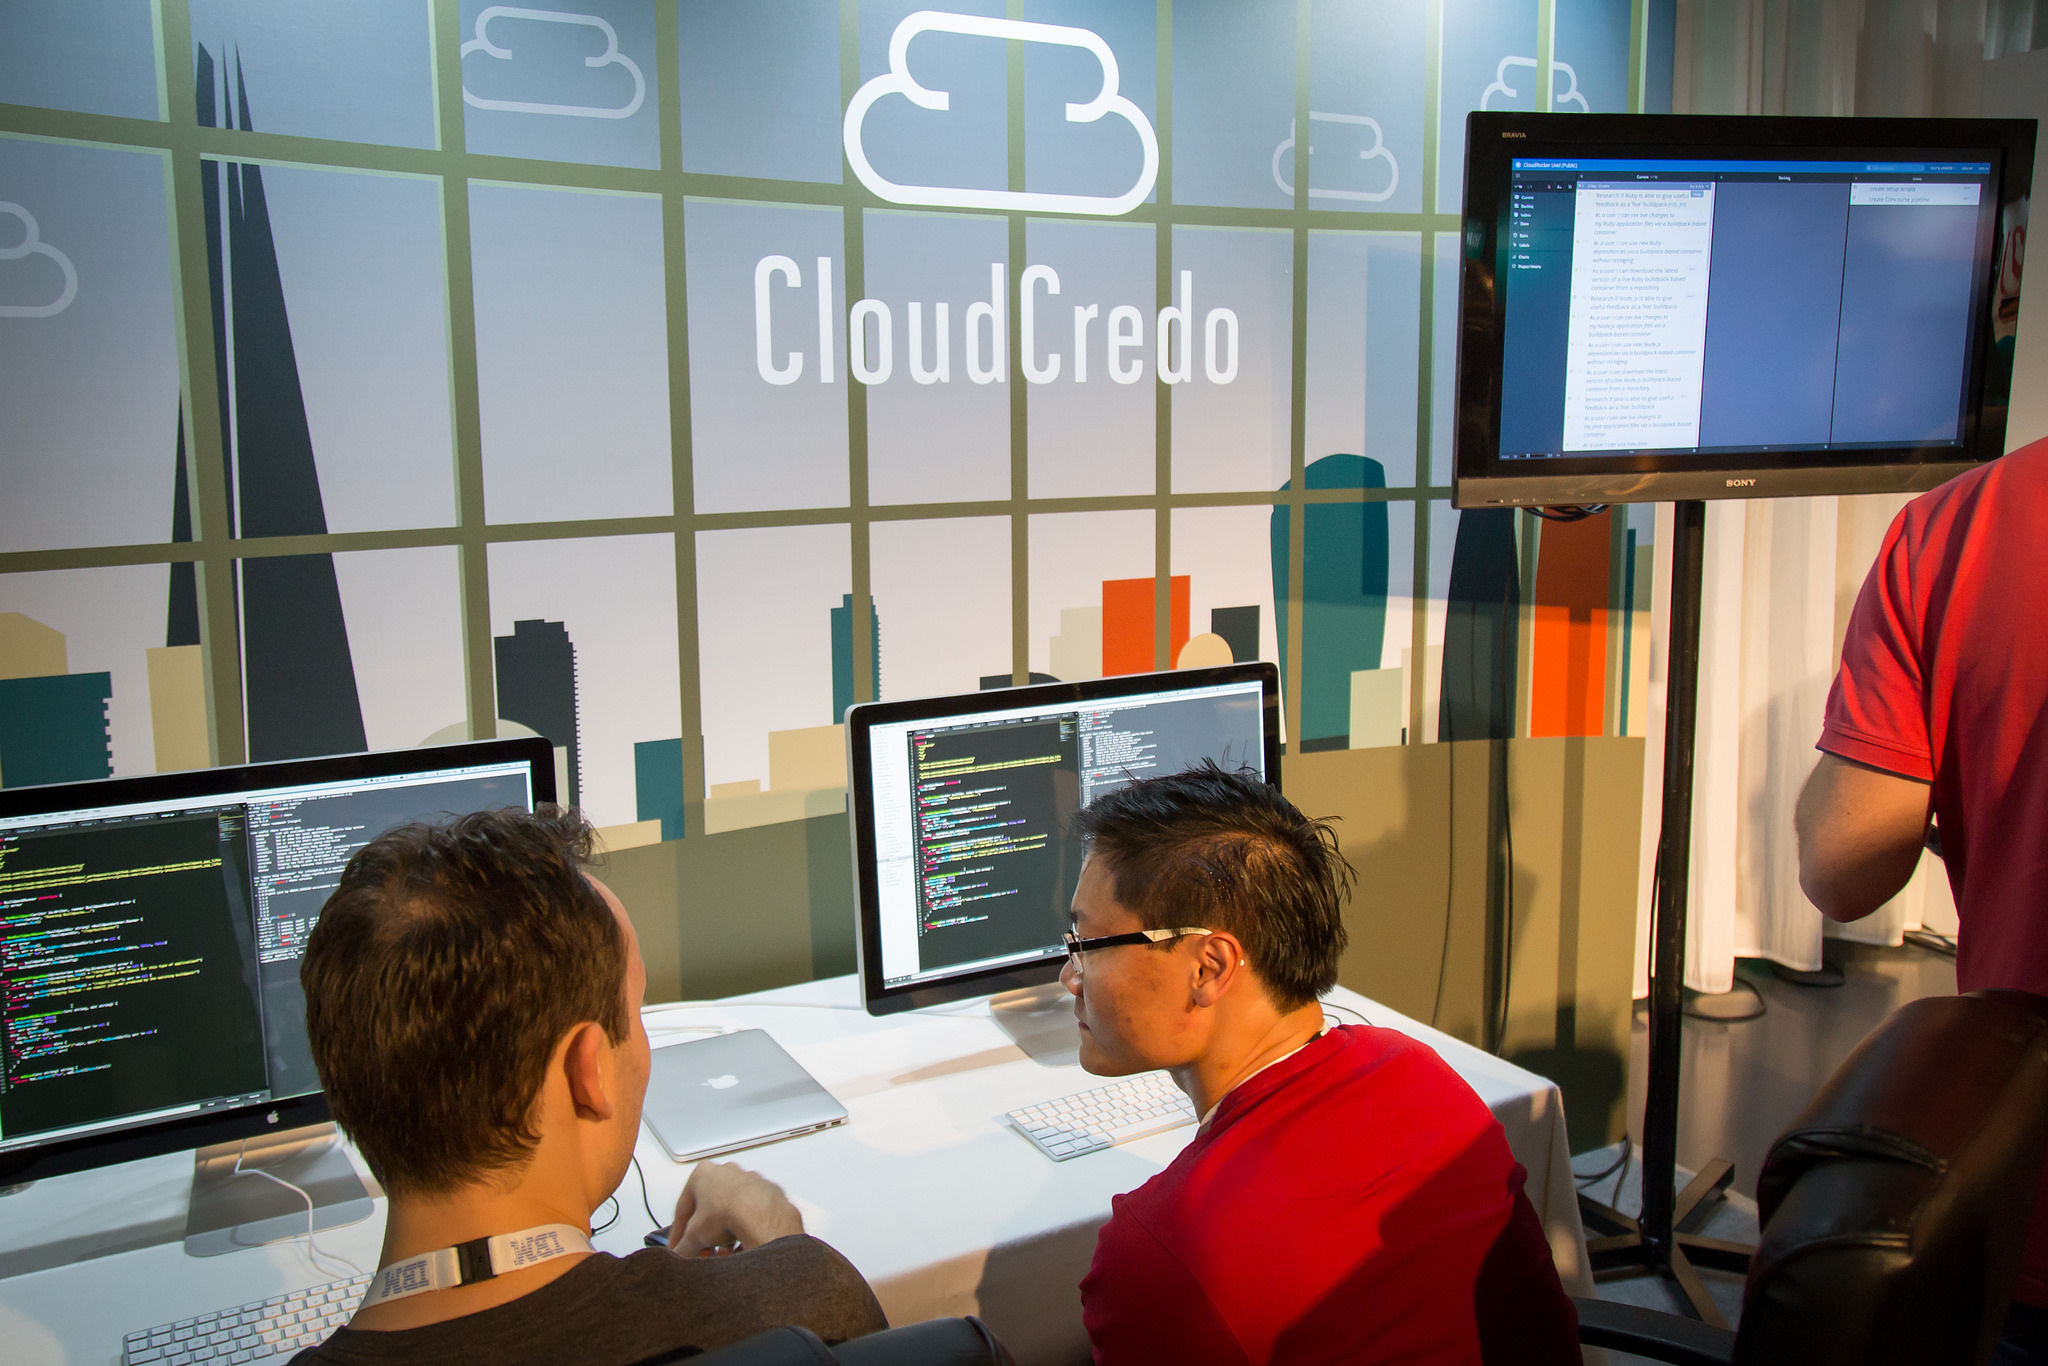 Pivotal buys CloudCredo.